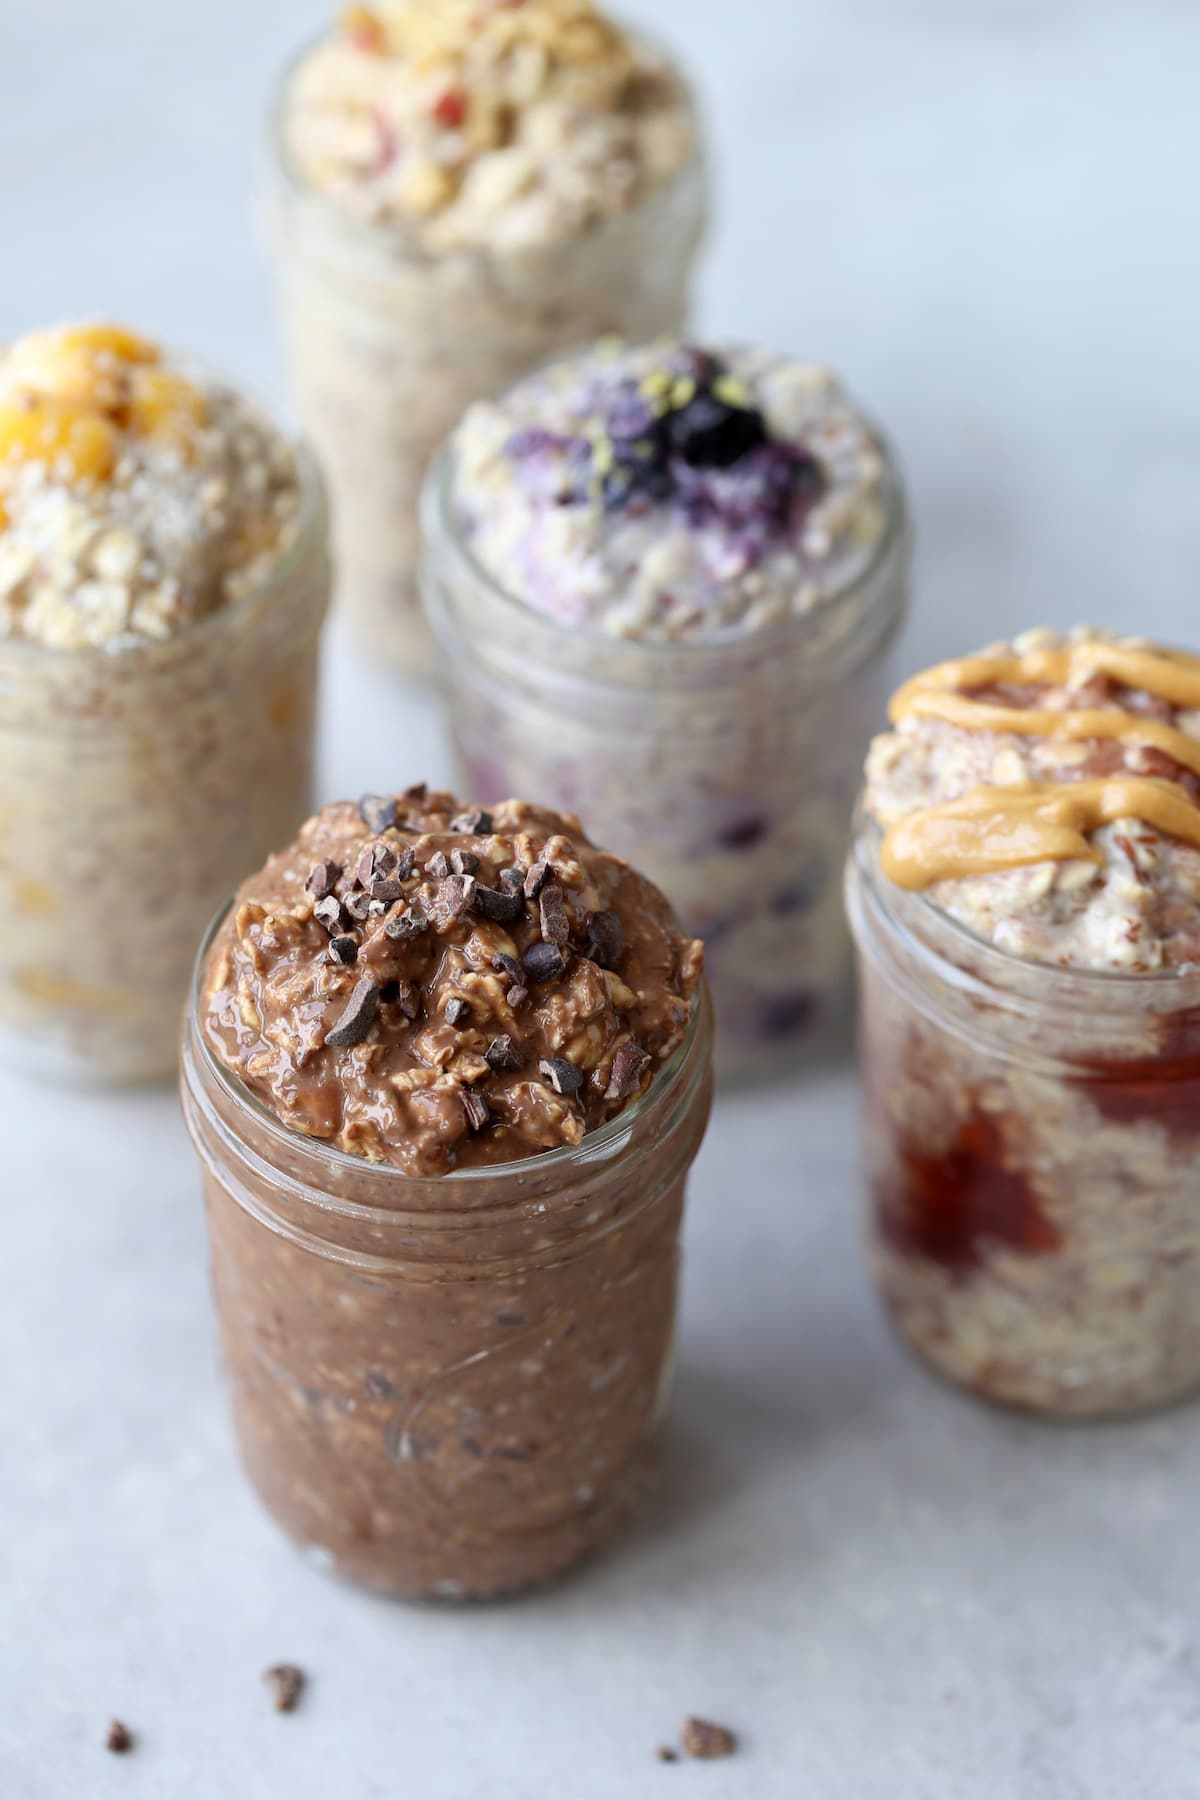 5 different flavors of overnight oats